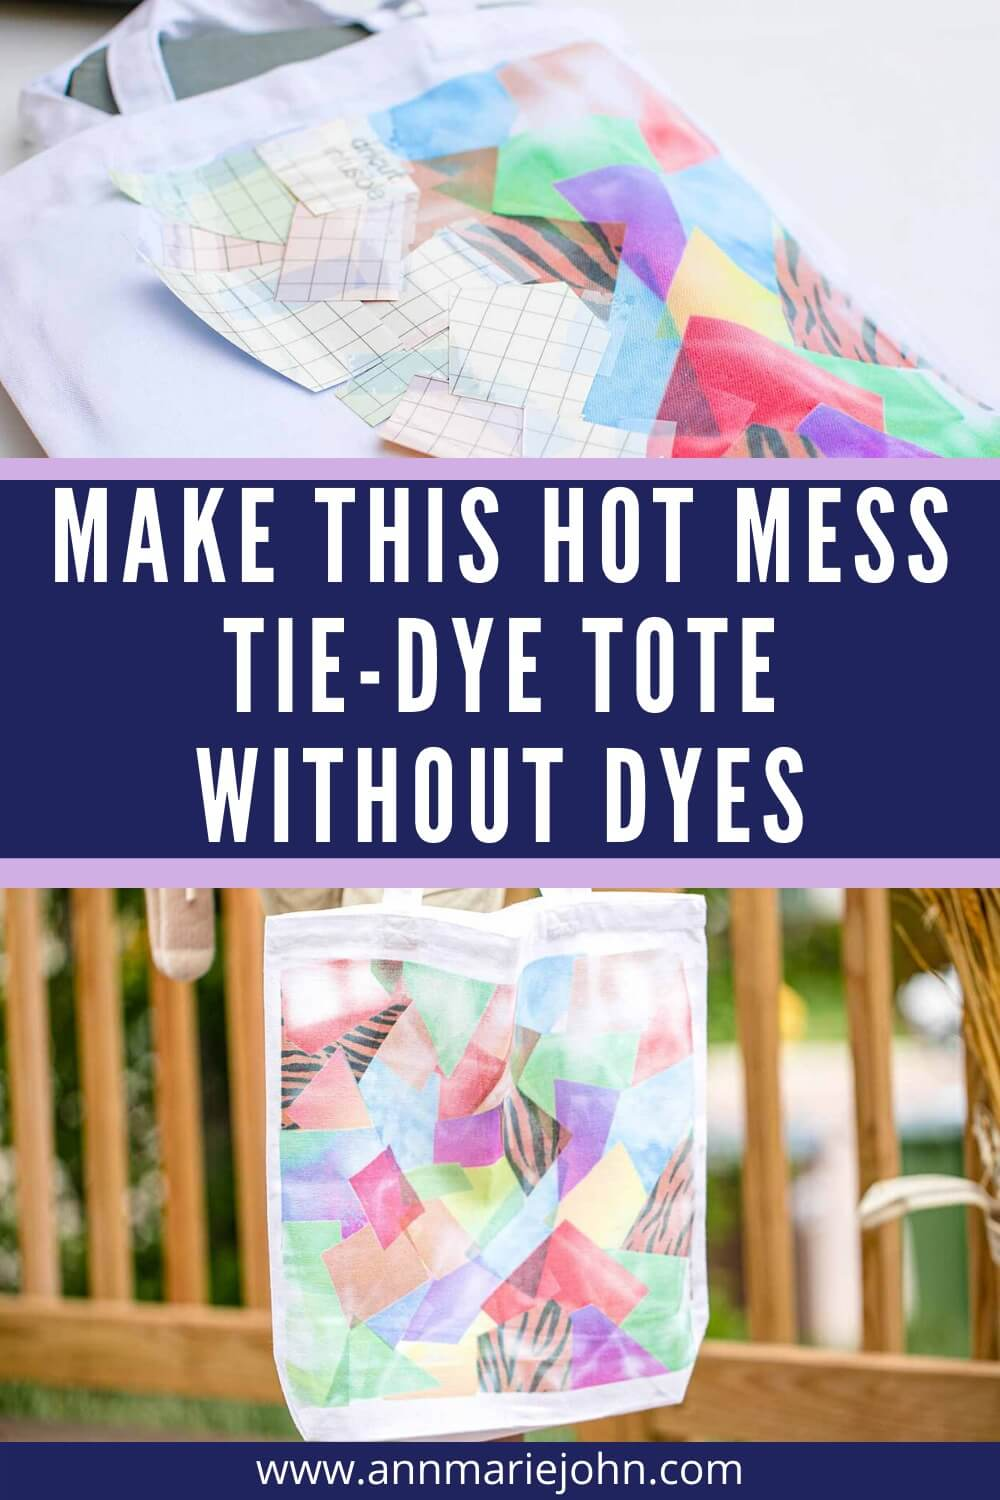 Make this hot mess tie-dye tote without dyes